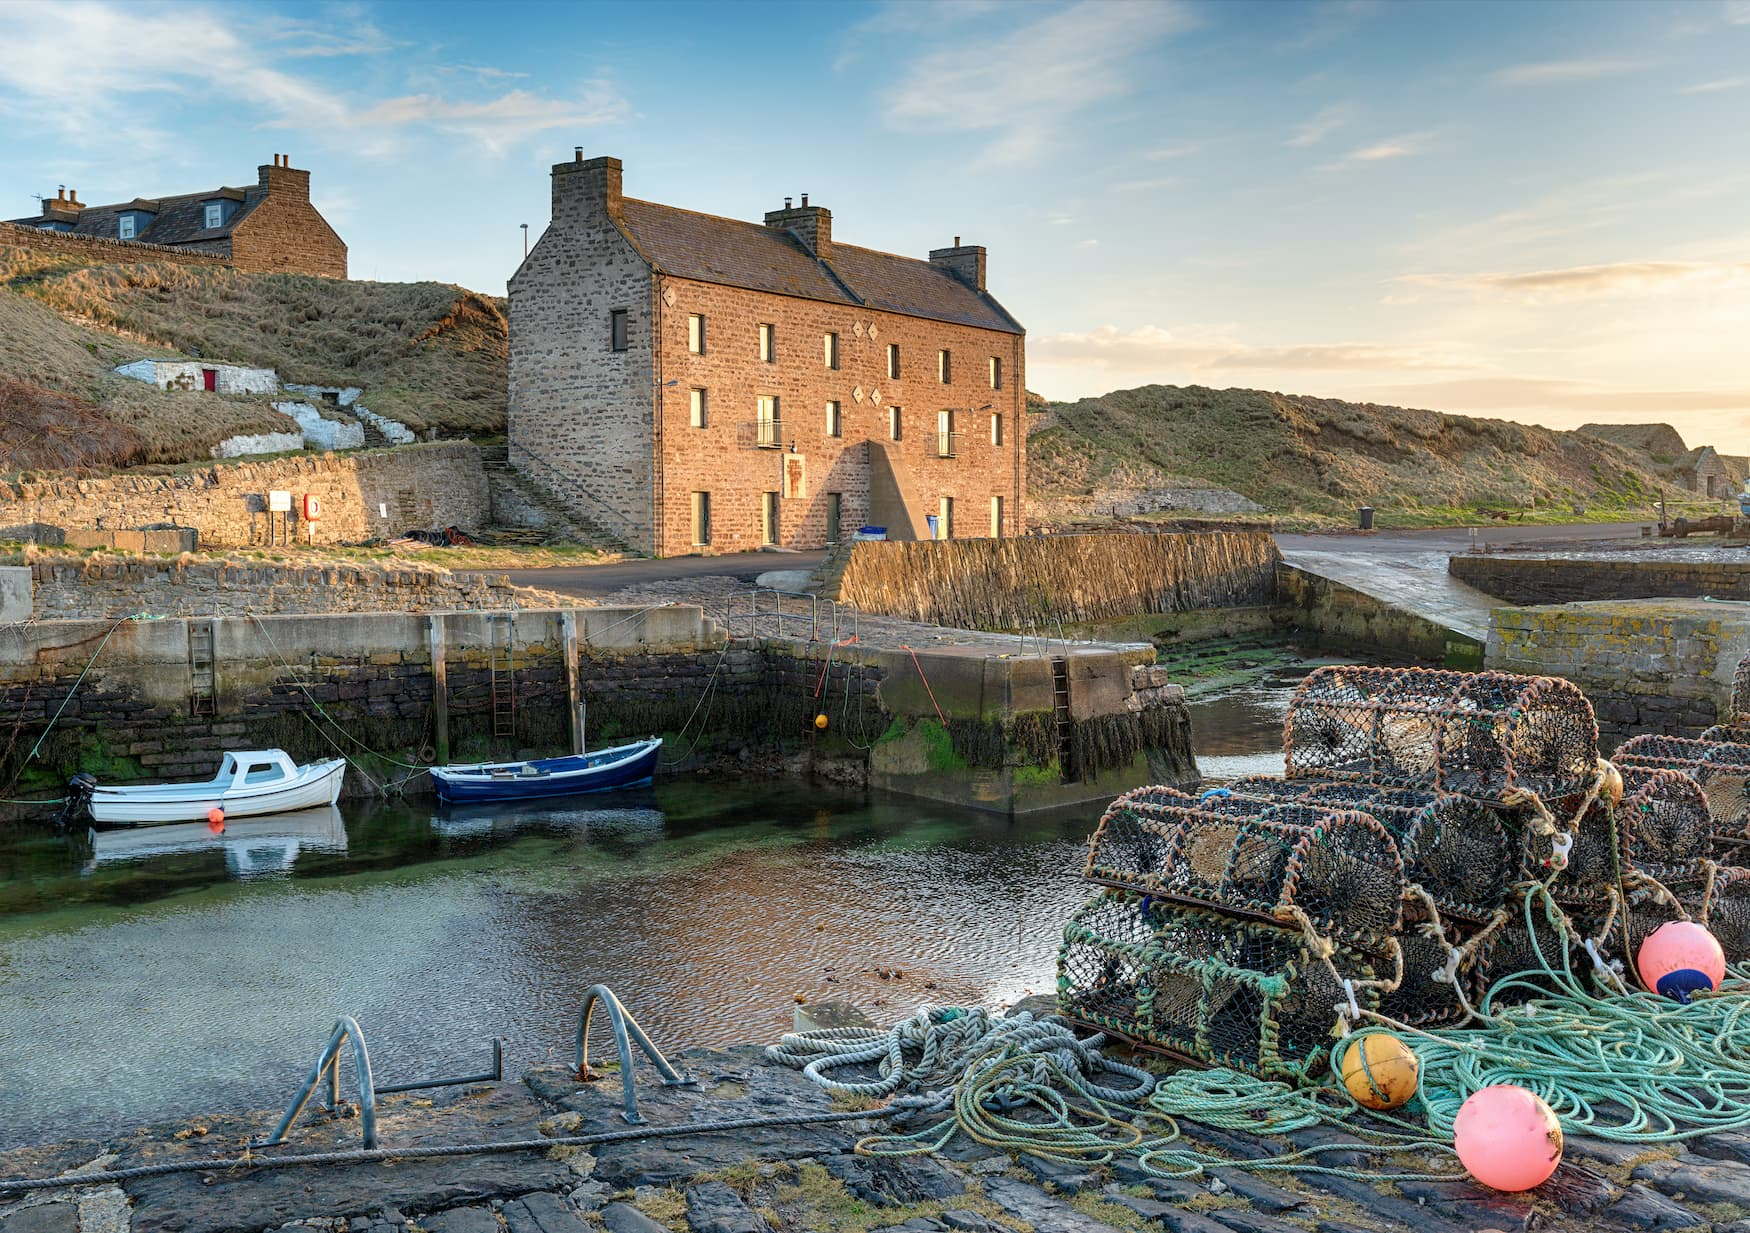 Keiss Harbour - Hafen in Schottland aus der Serie The Crown